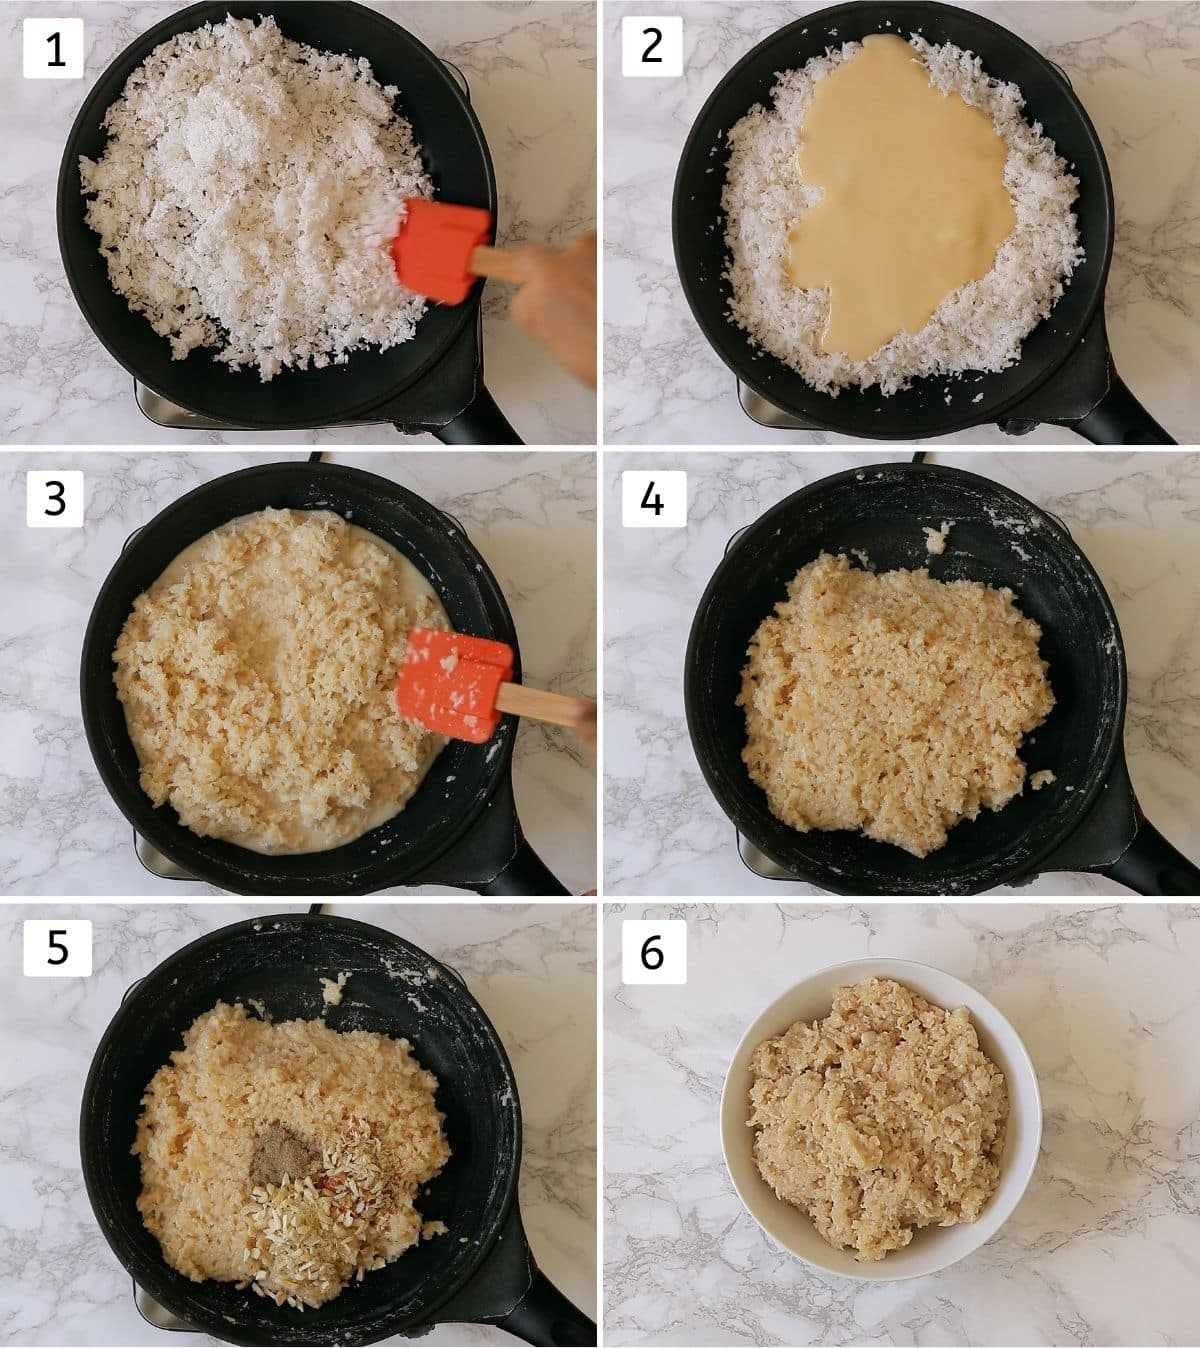 collage of making coconut ladoo mixture. Includes roasting coconut, adding condensed milk, cooking, adding nuts, removing to a bowl.